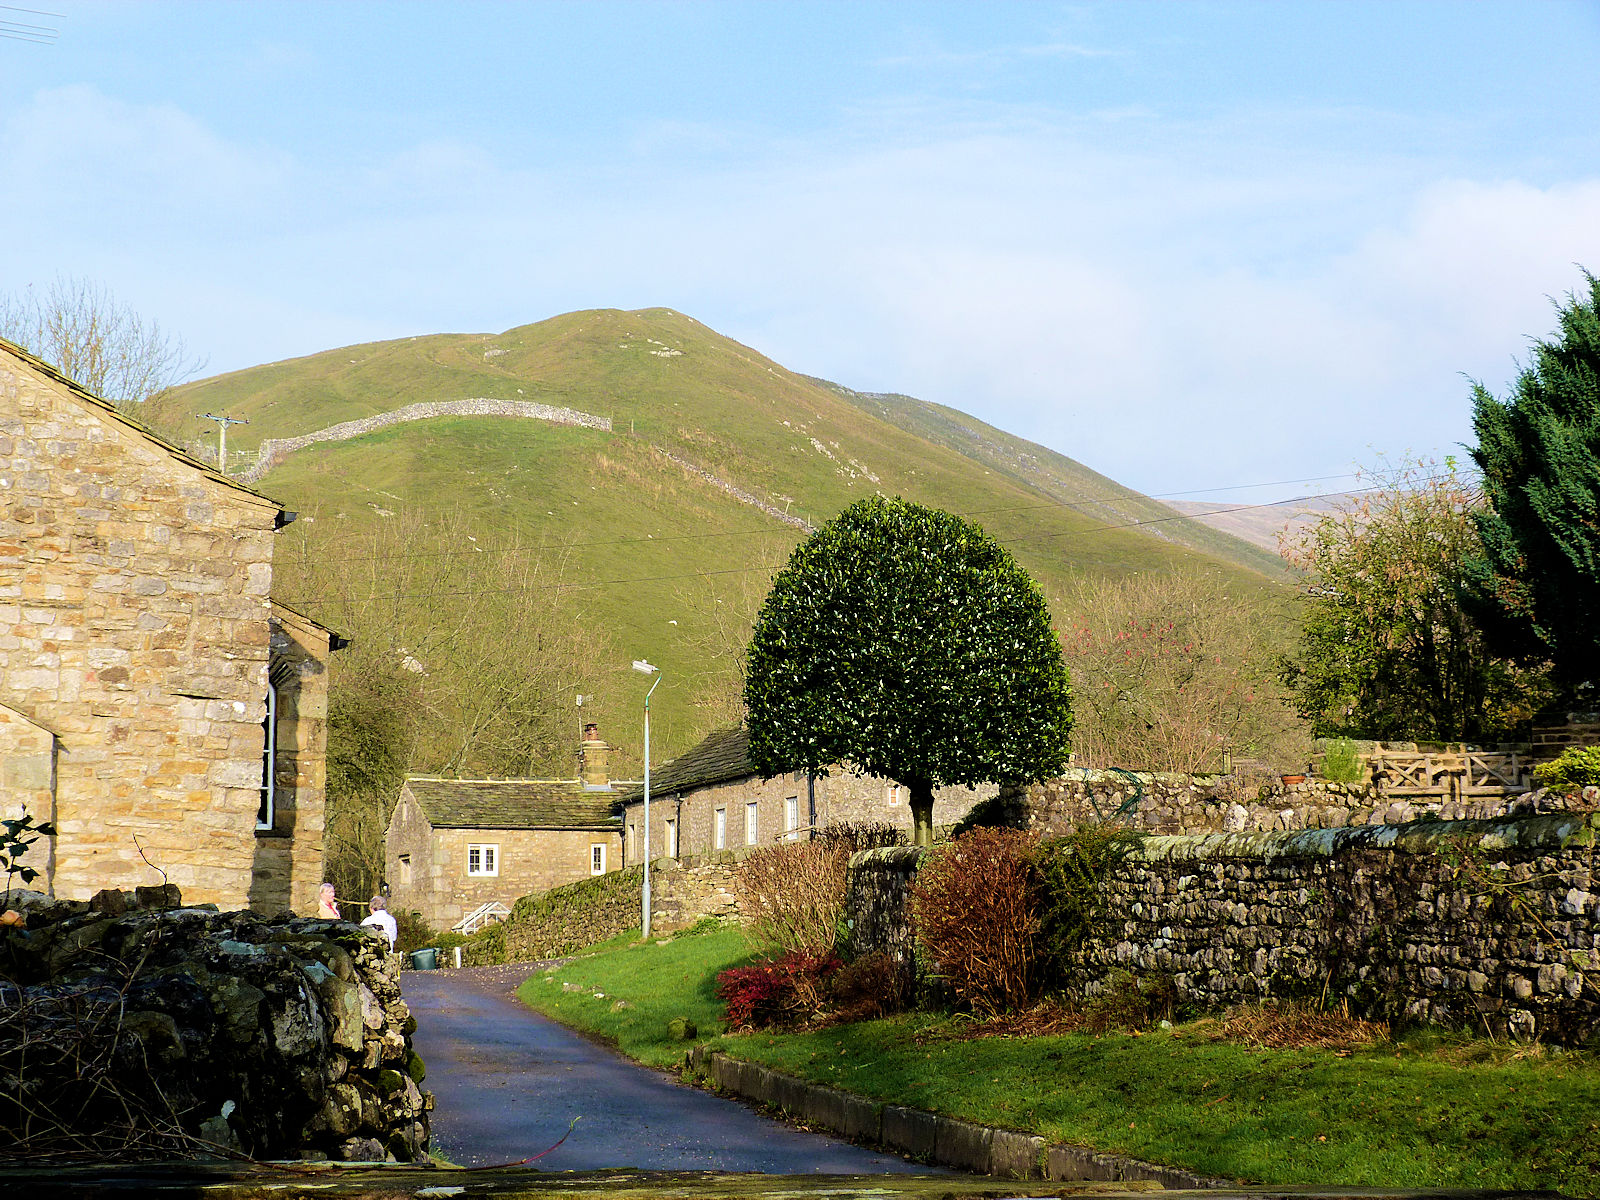 Bradford man, 18, arrested after police chase in Yorkshire Dales